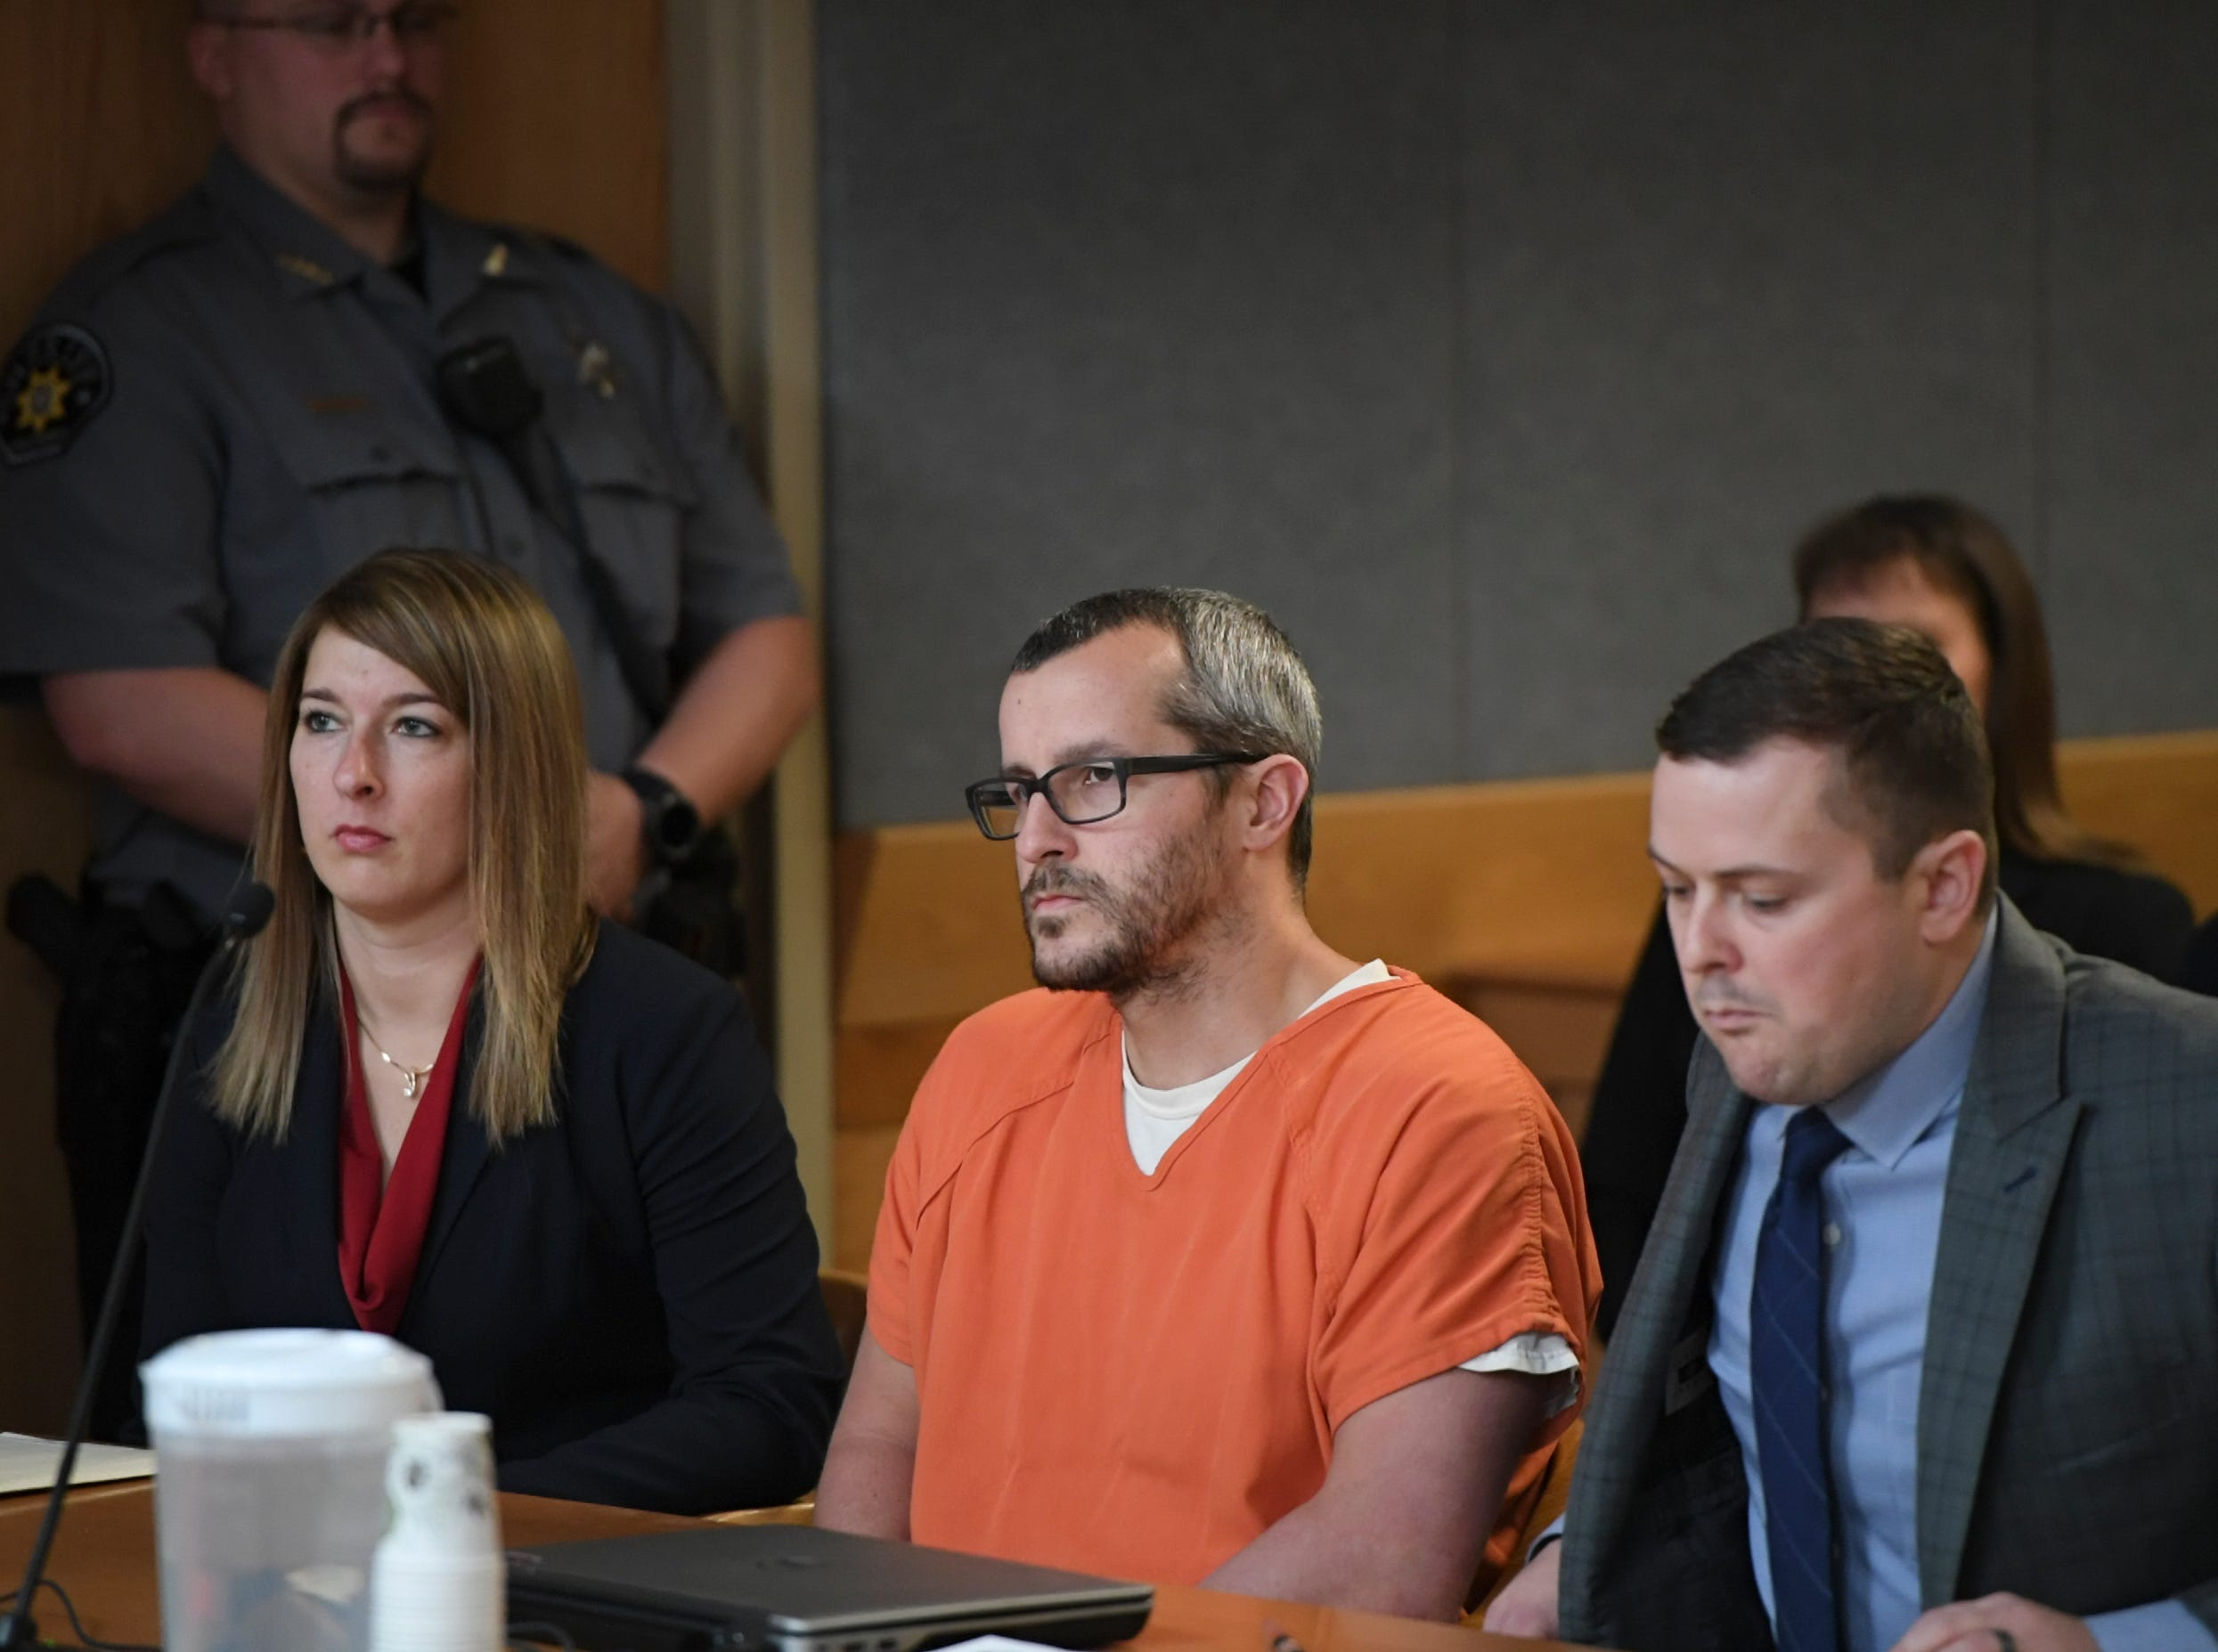 GREELEY CO - NOVEMBER 19: Christopher Watts sits in court for his sentencing hearing at the Weld County Courthouse on November 19, 2018 in Greeley, Colorado. Watts was sentenced to life in prison for murdering his pregnant wife, daughters. (Photo by RJ Sangosti/The Denver Post)